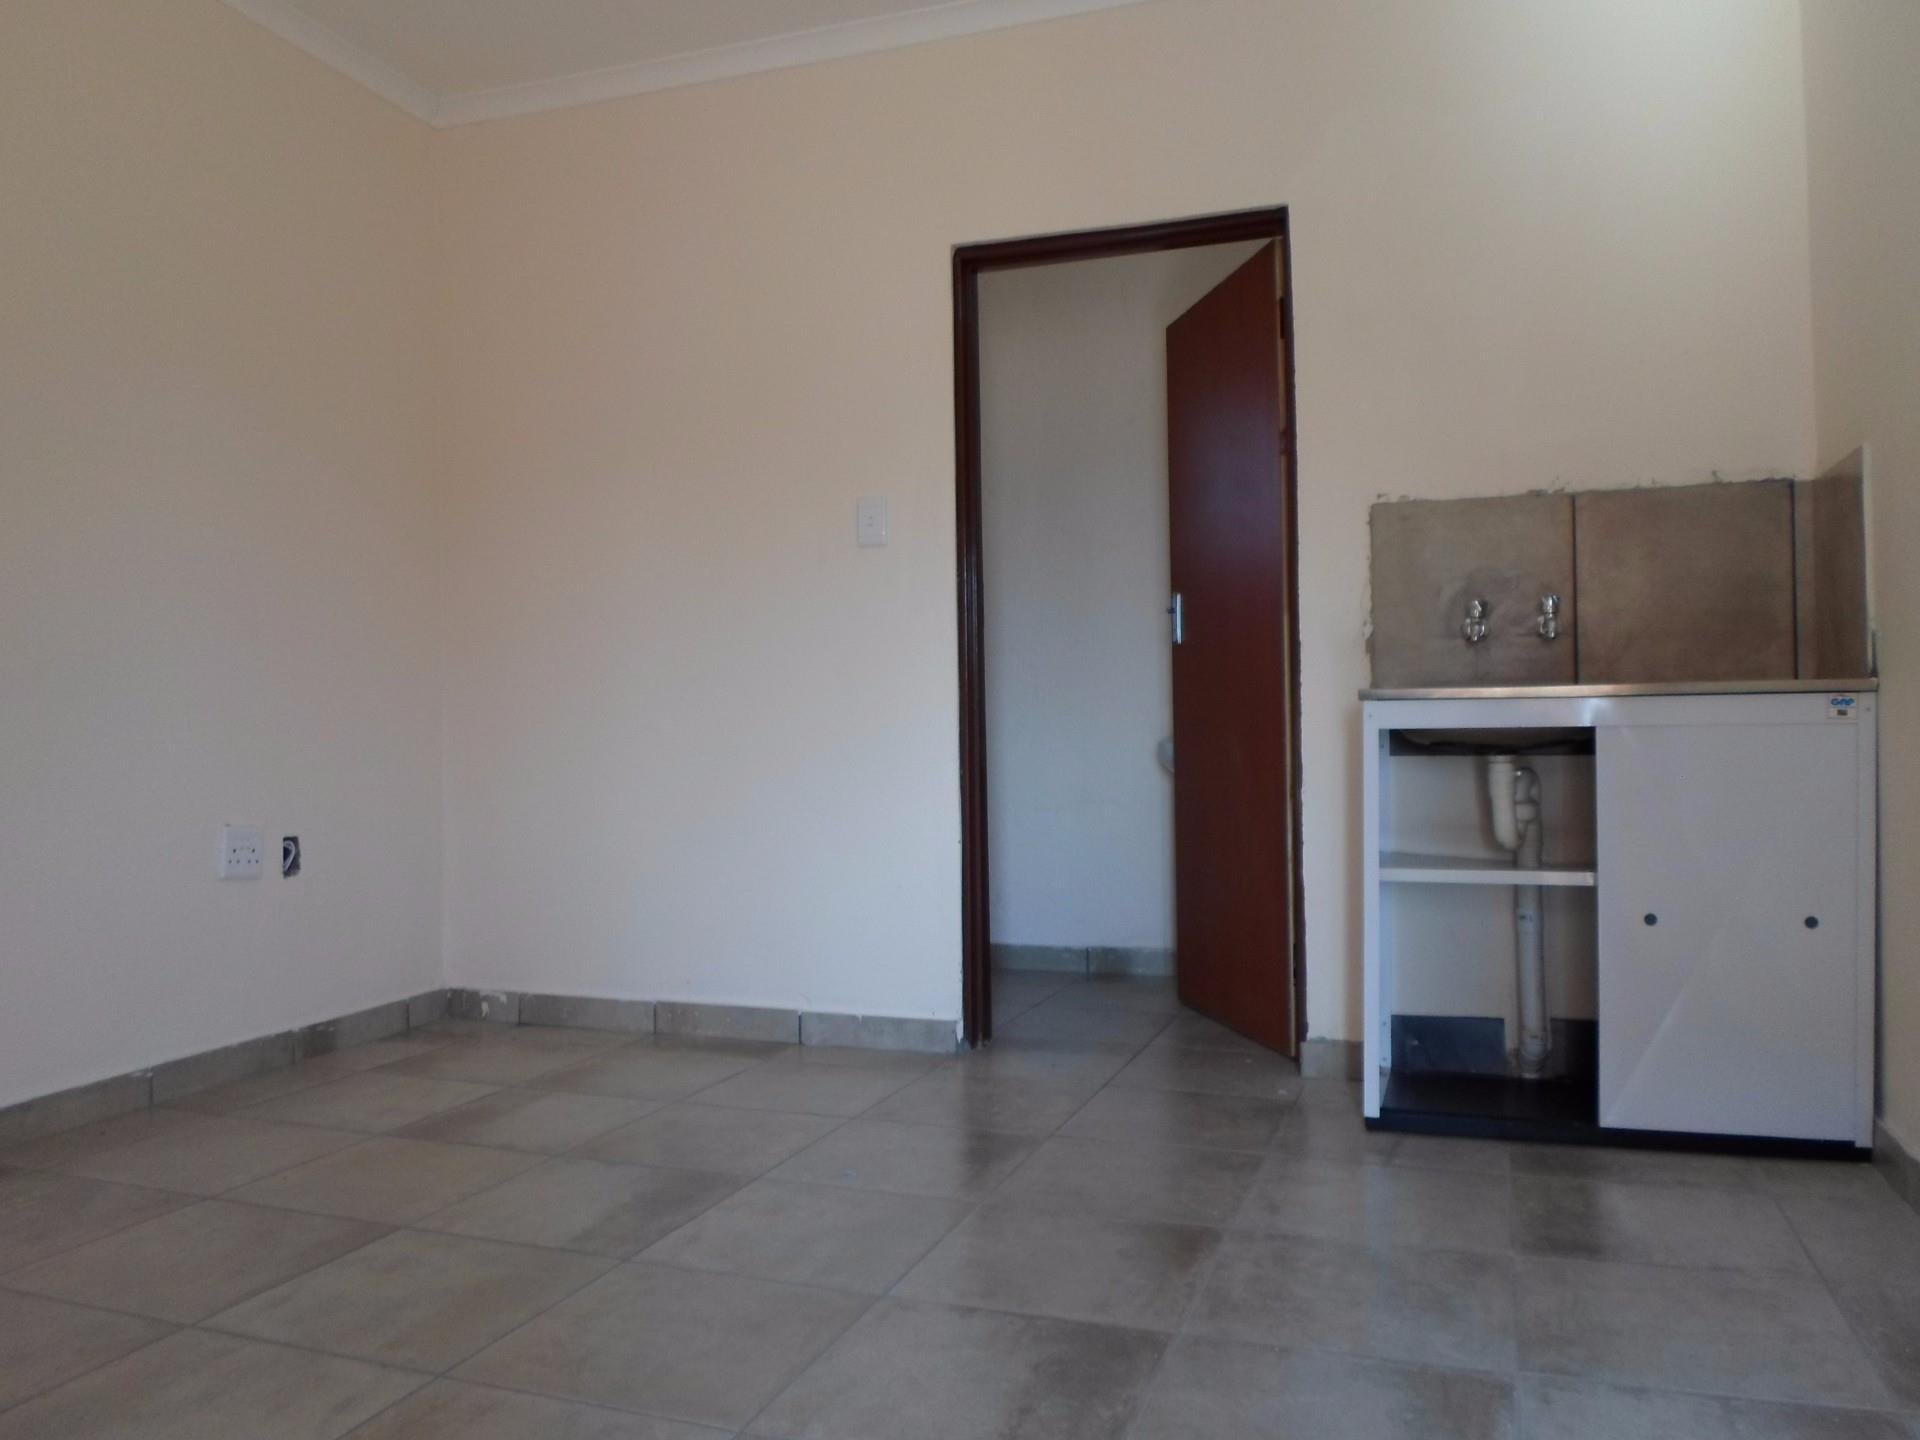 16 Bedroom Apartment / Flat To Rent in Marapong